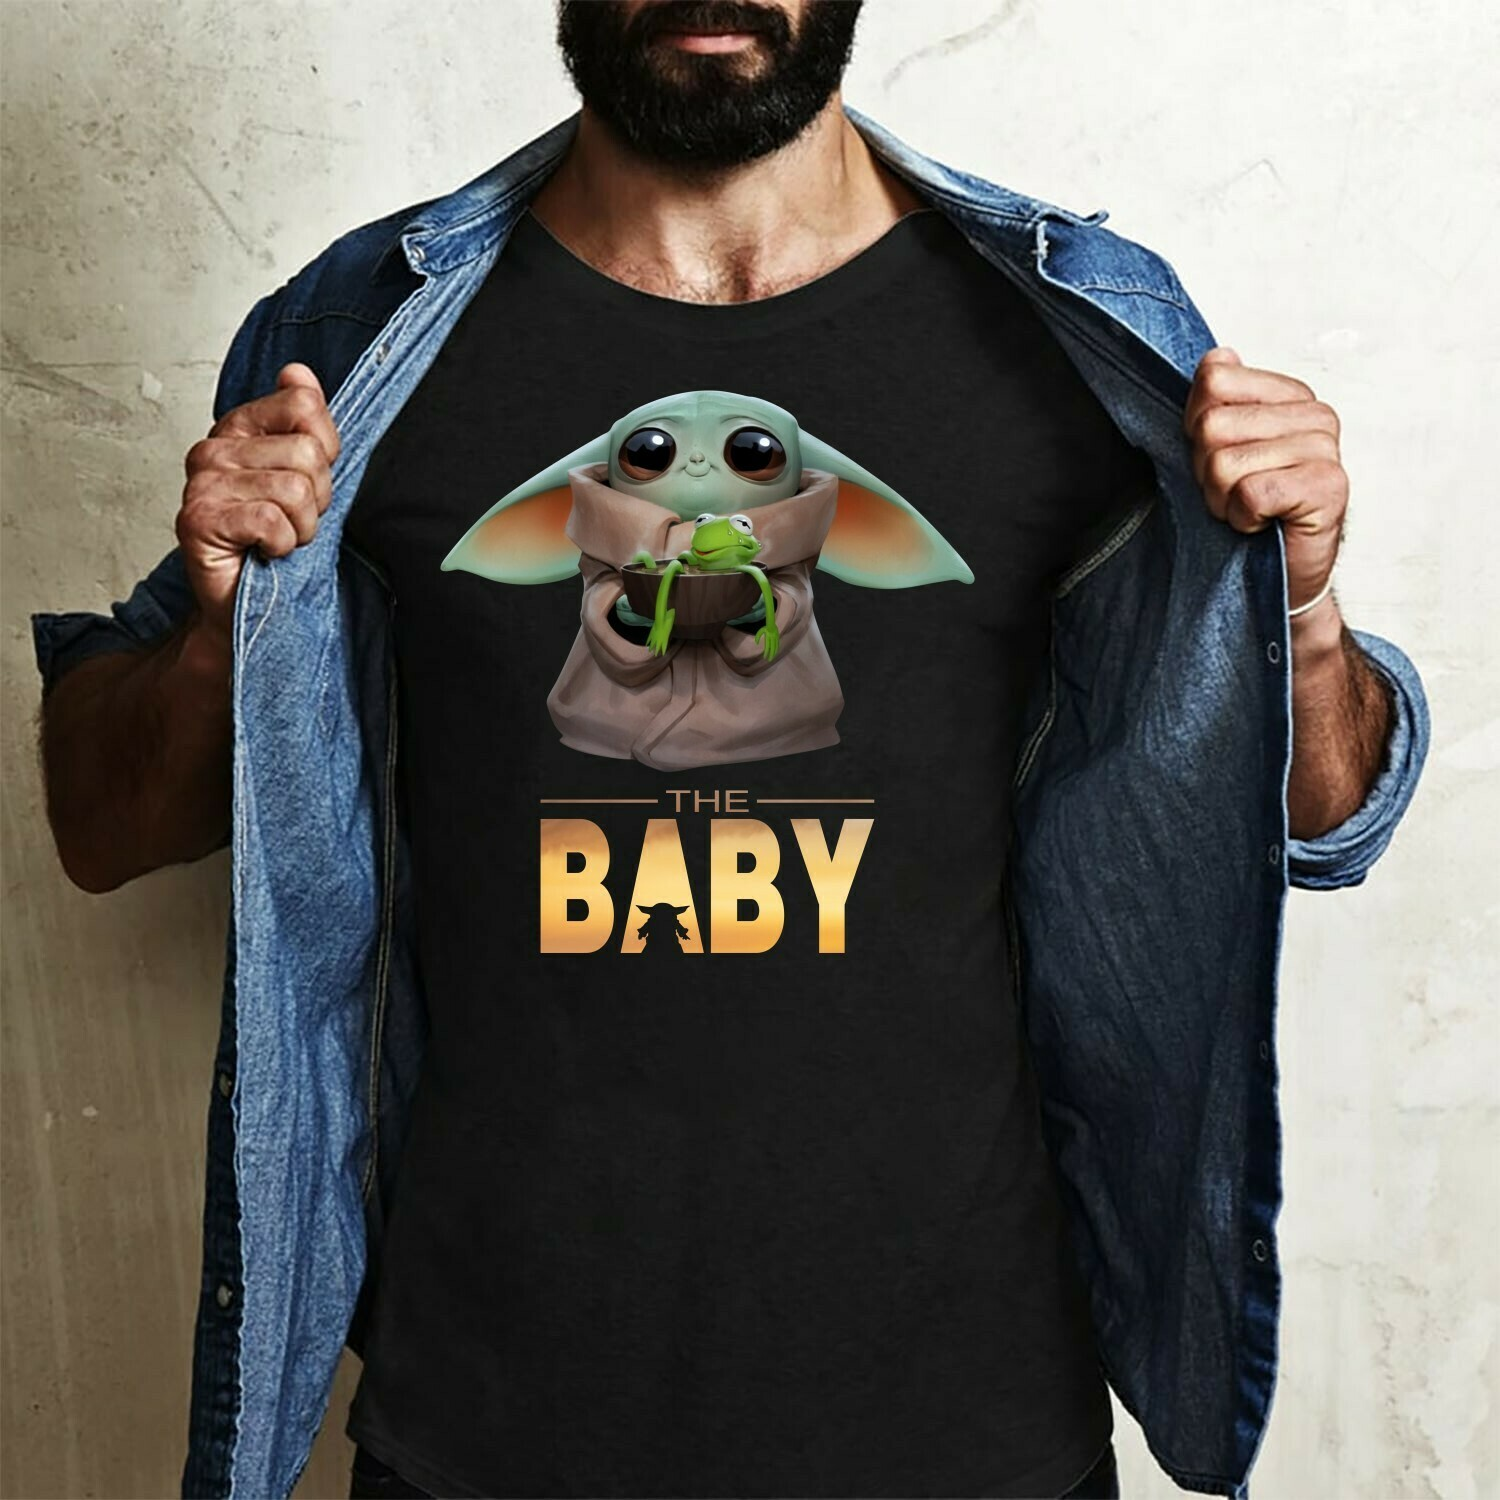 The Baby Yoda christmas Spirit Animals,The Mandalorian The Child Discovery Silhouette,Baby Yoda The Child Unknown Species T-Shirt Long Sleeve Sweatshirt Hoodie Jolly Family Gifts